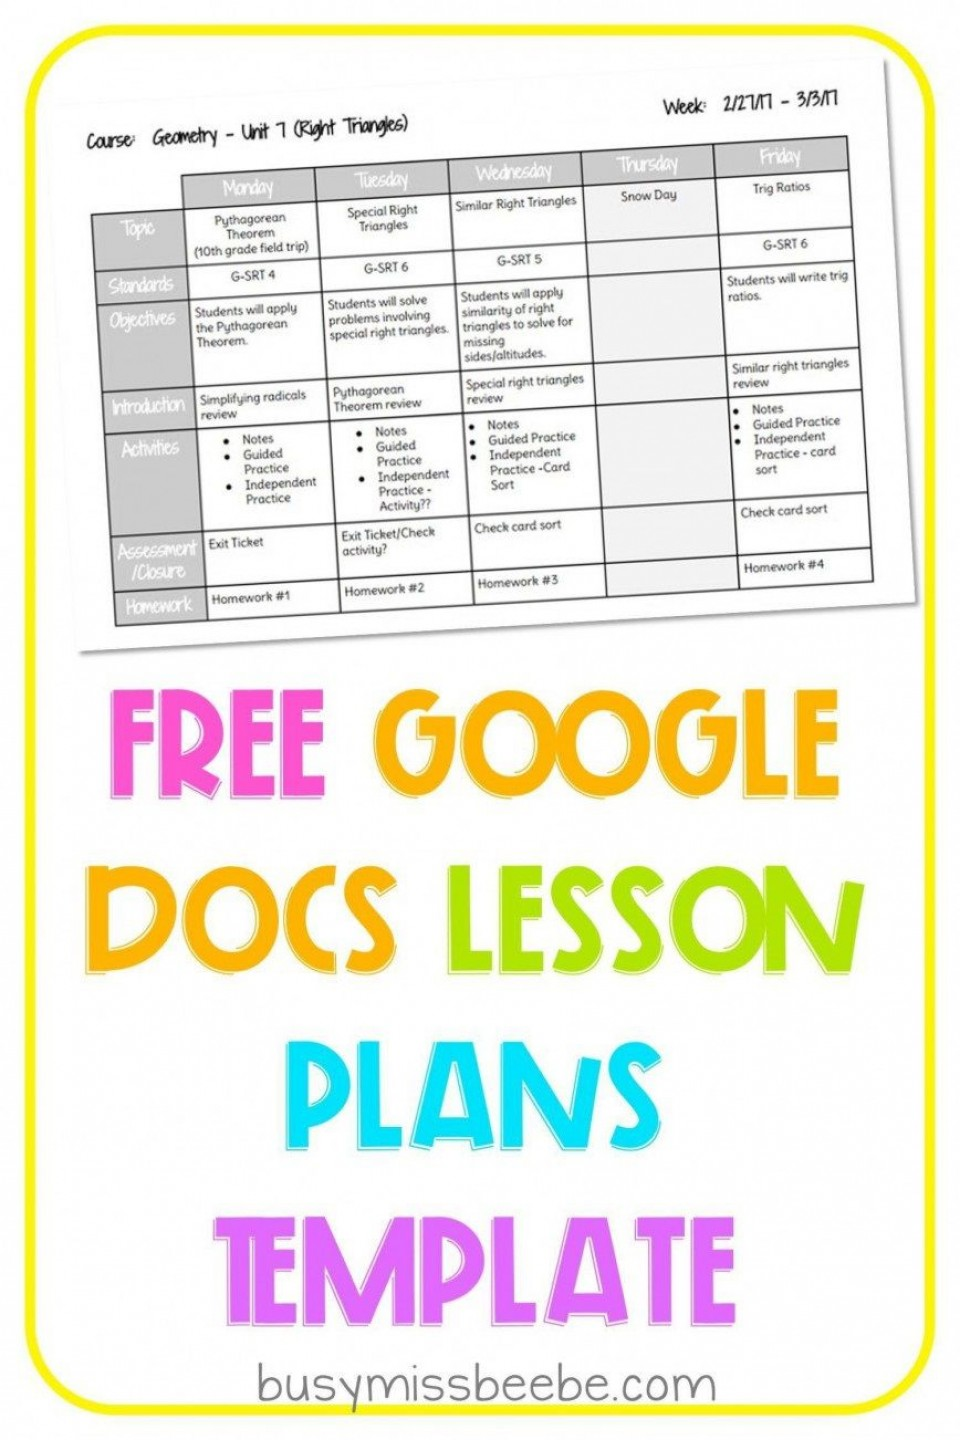 009 Impressive Weekly Lesson Plan Template Google Doc High Def  Ubd Siop960